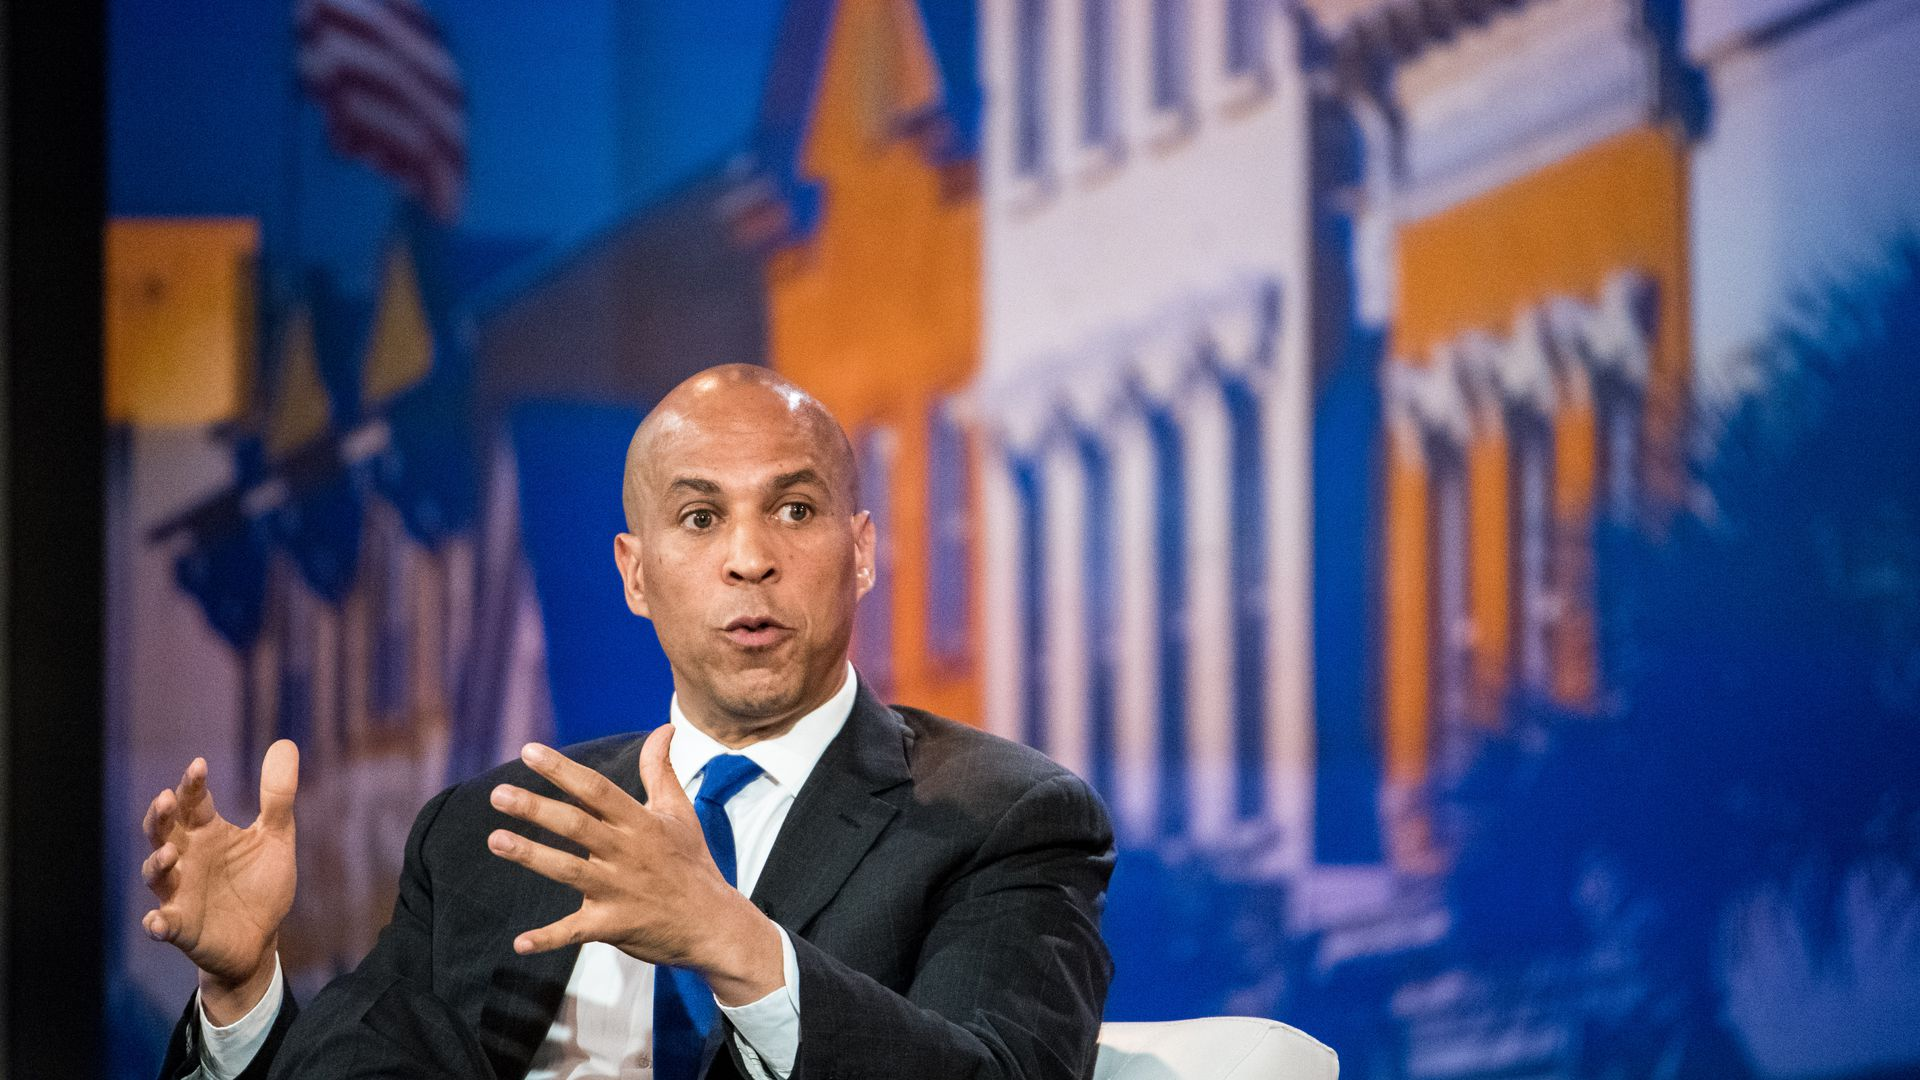 In this image, Booker sits while speaking.